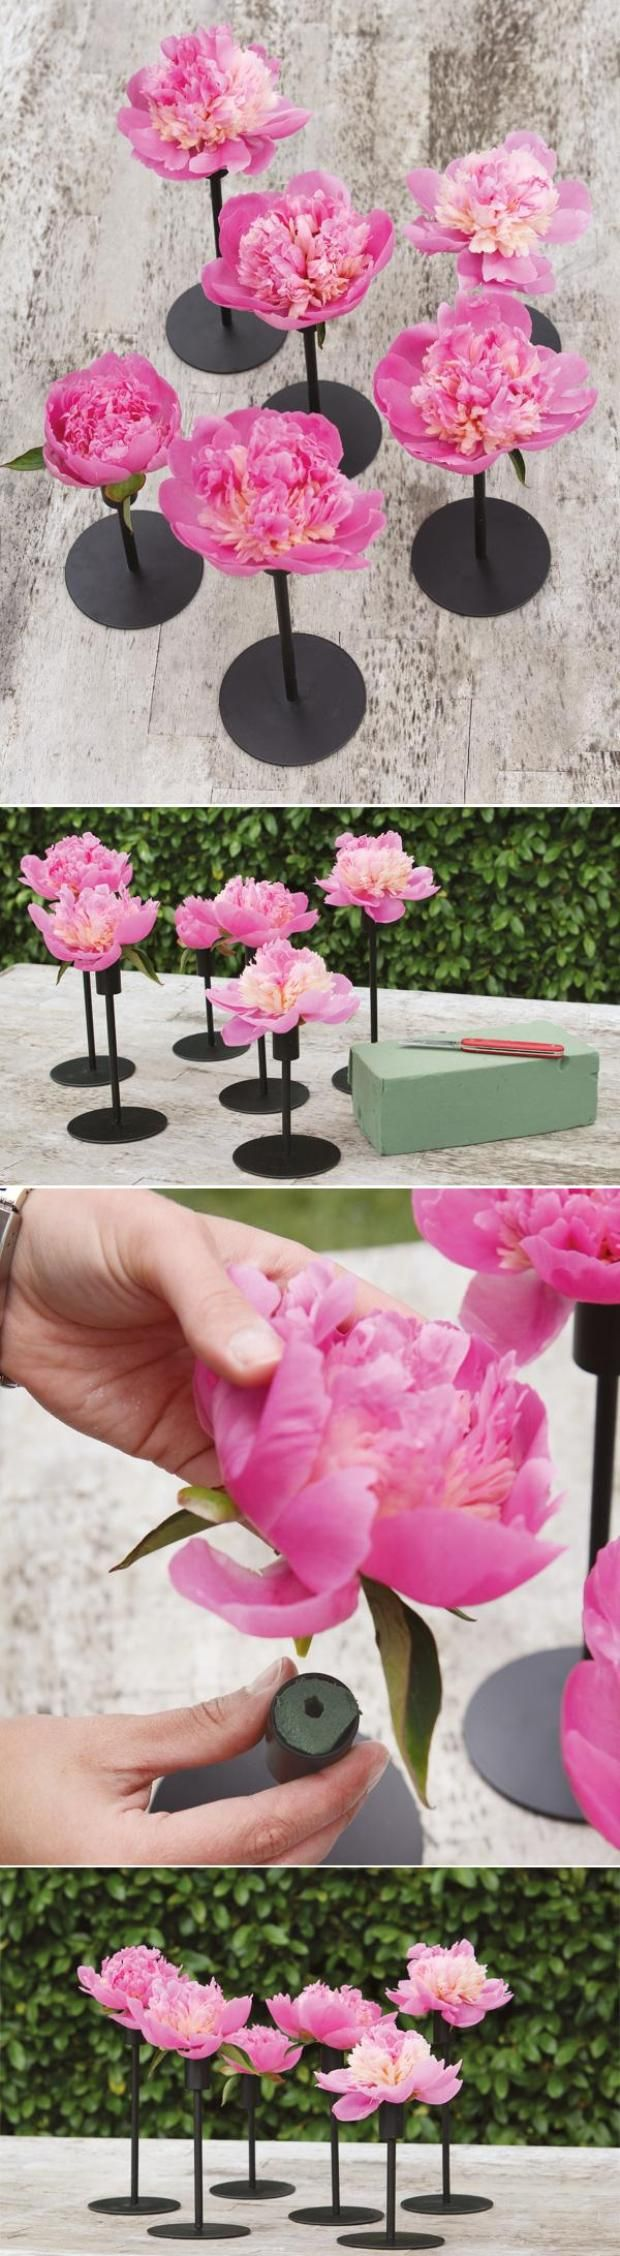 Fabulous DIY Wedding Centerpieces Wedding Centerpiece DIY: Candelsticks & Peonies